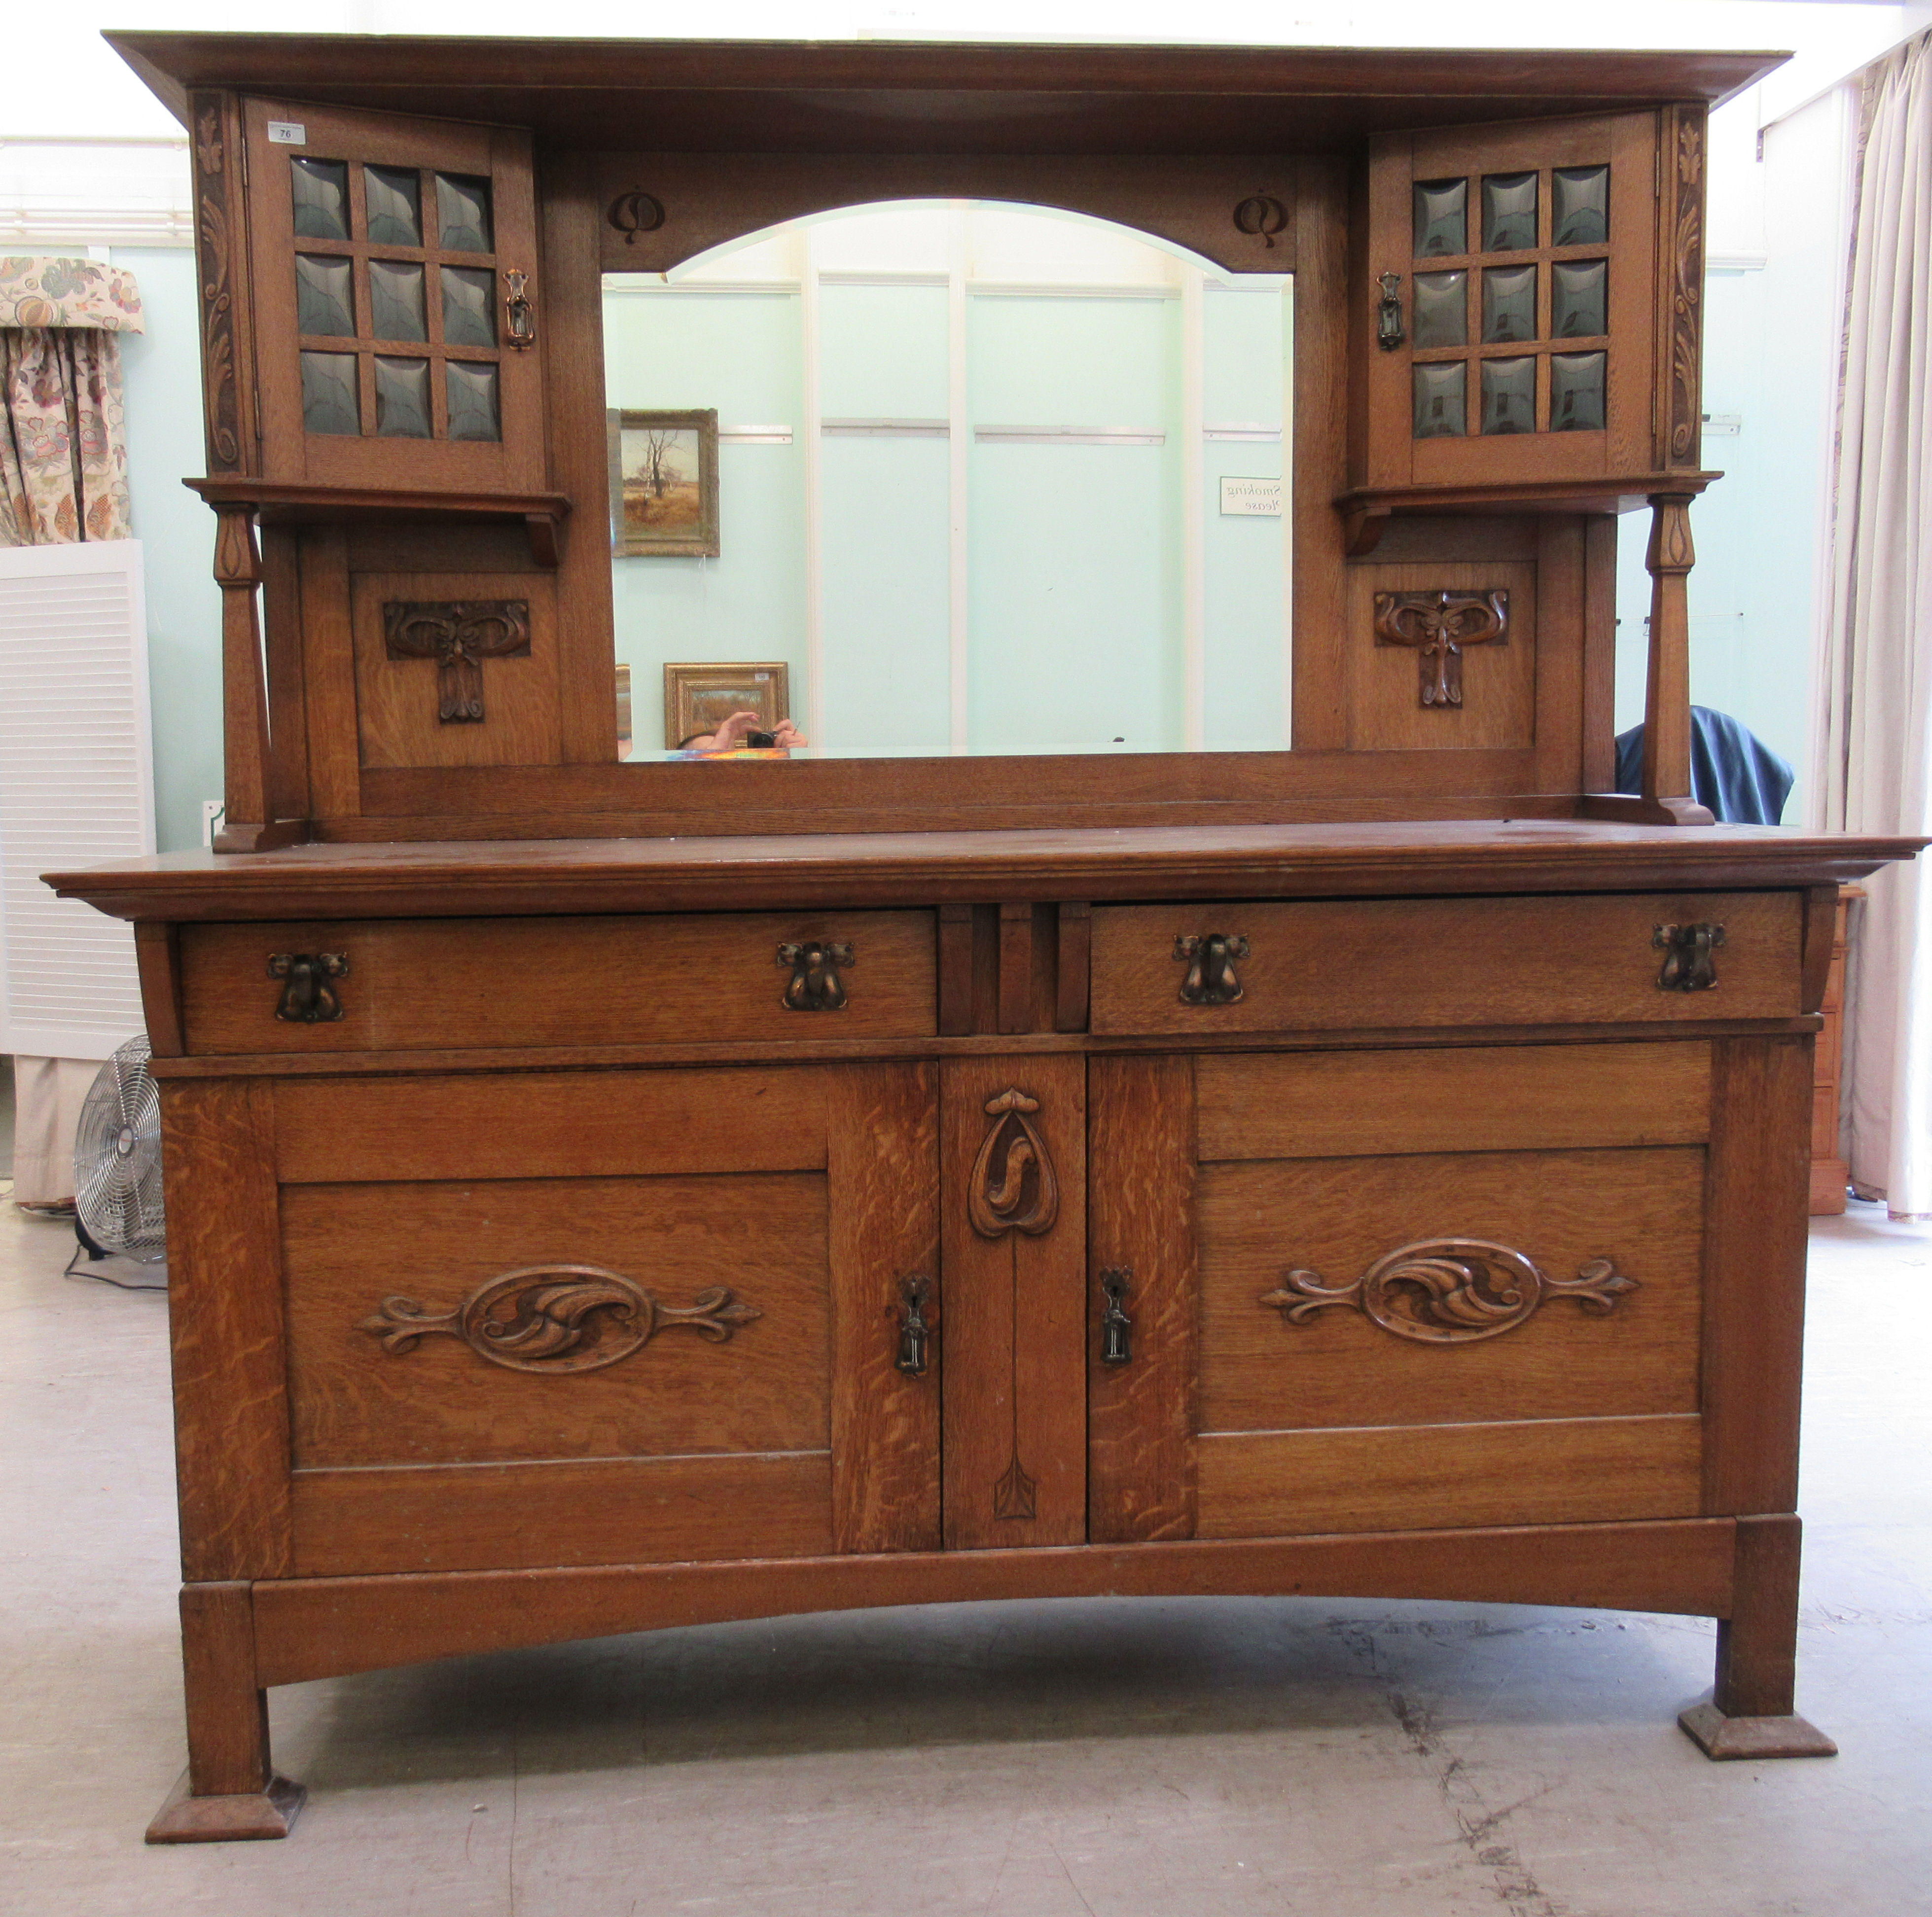 An early 20thC Liberty & Co light oak dresser with carved organically inspired ornament, the